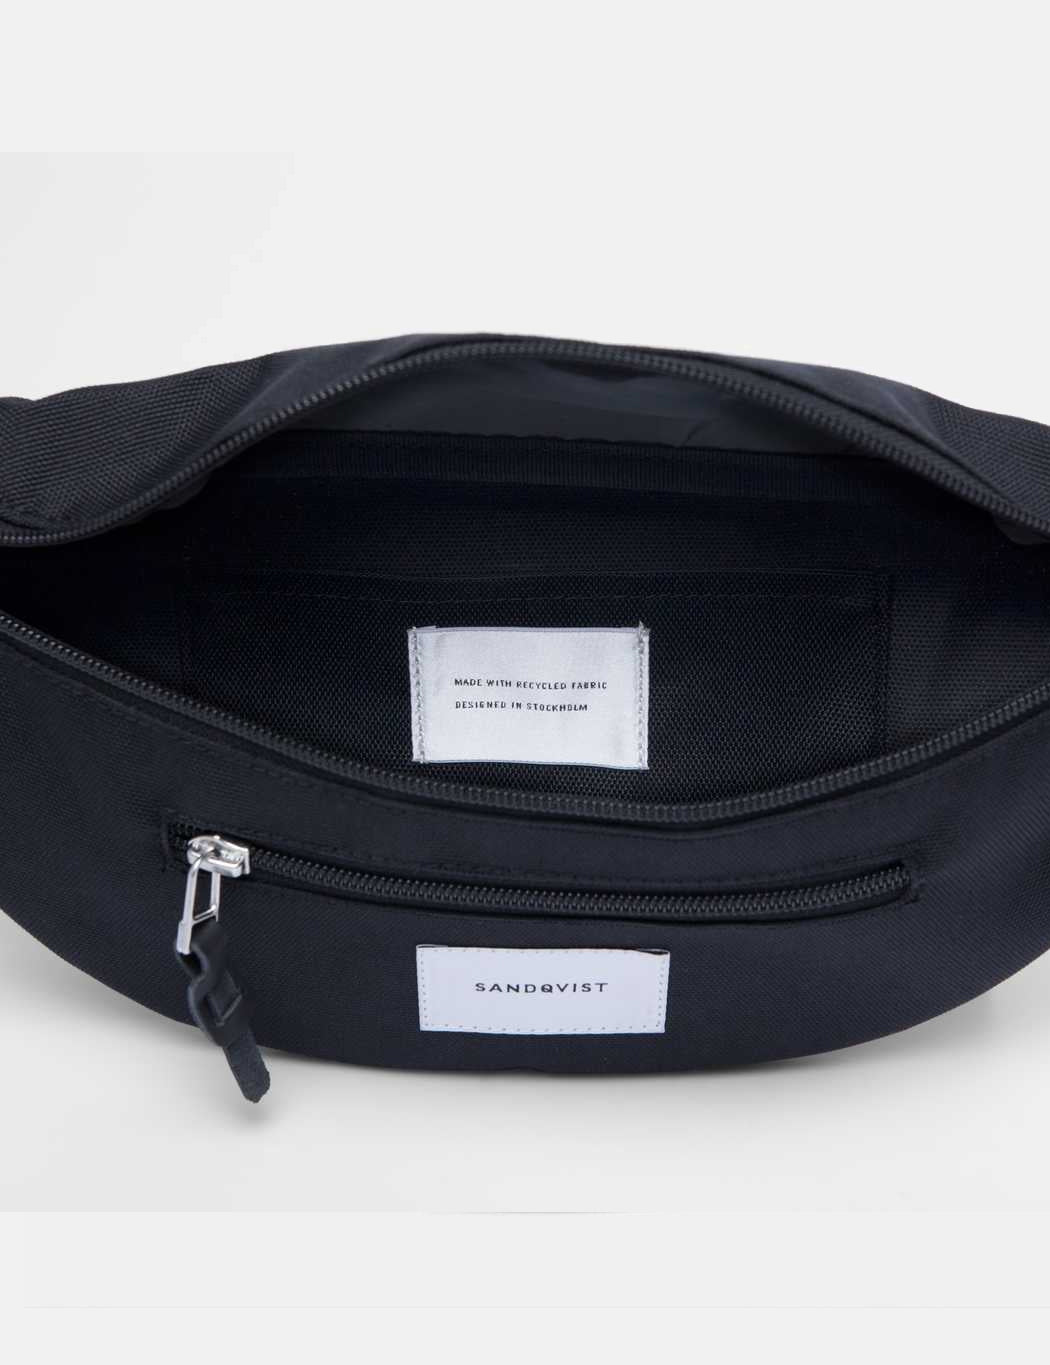 Sandqvist Aste Hip Bag - Black